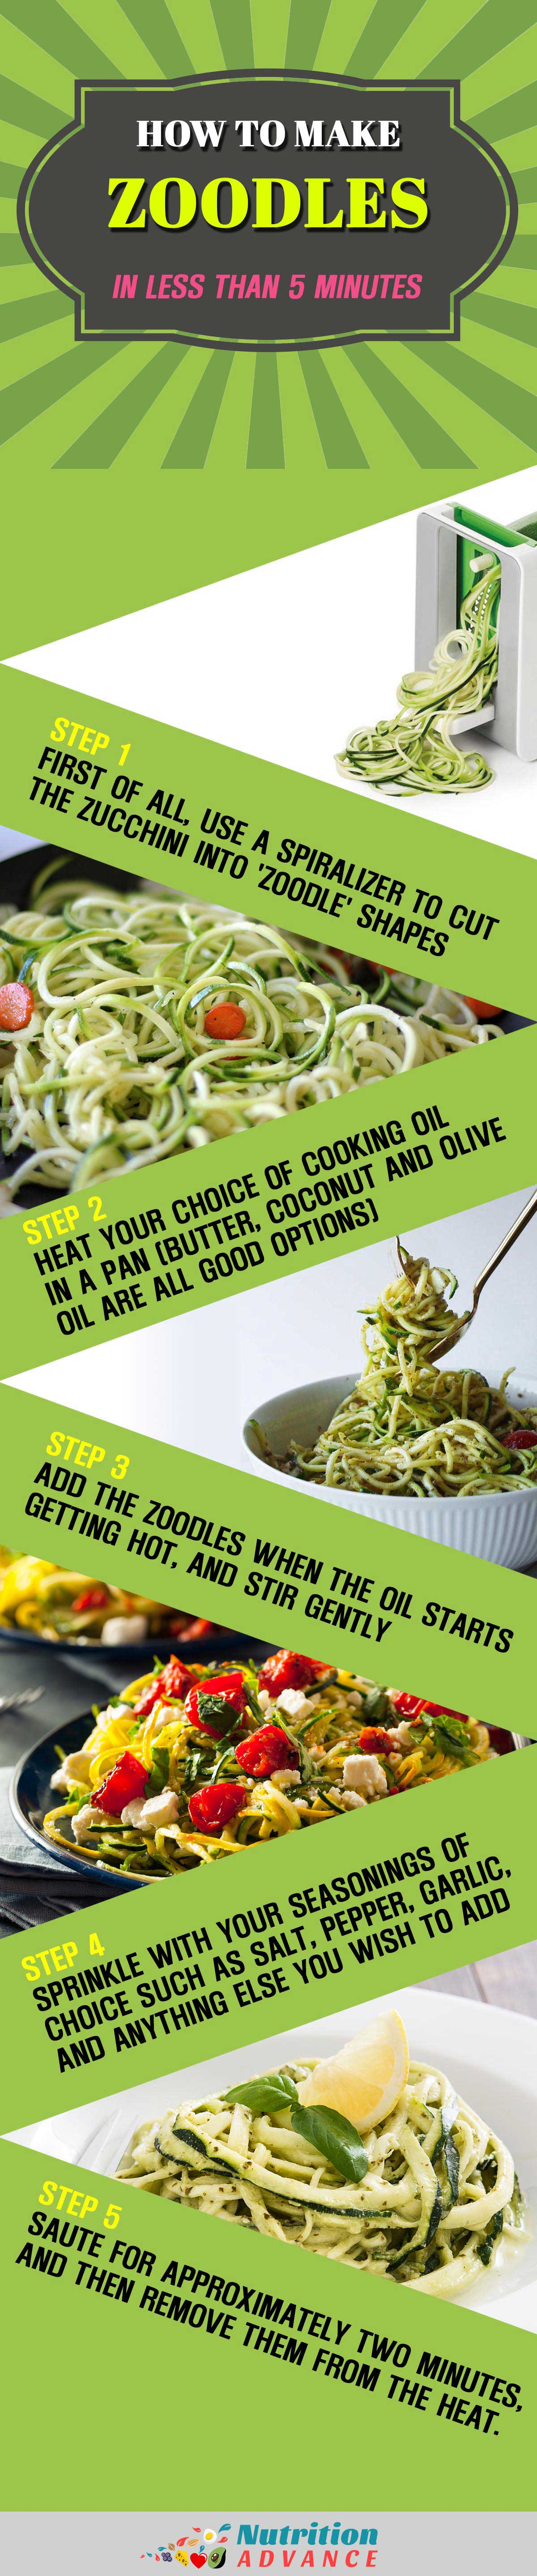 Infographic showing how to make zoodles in under 5 minutes